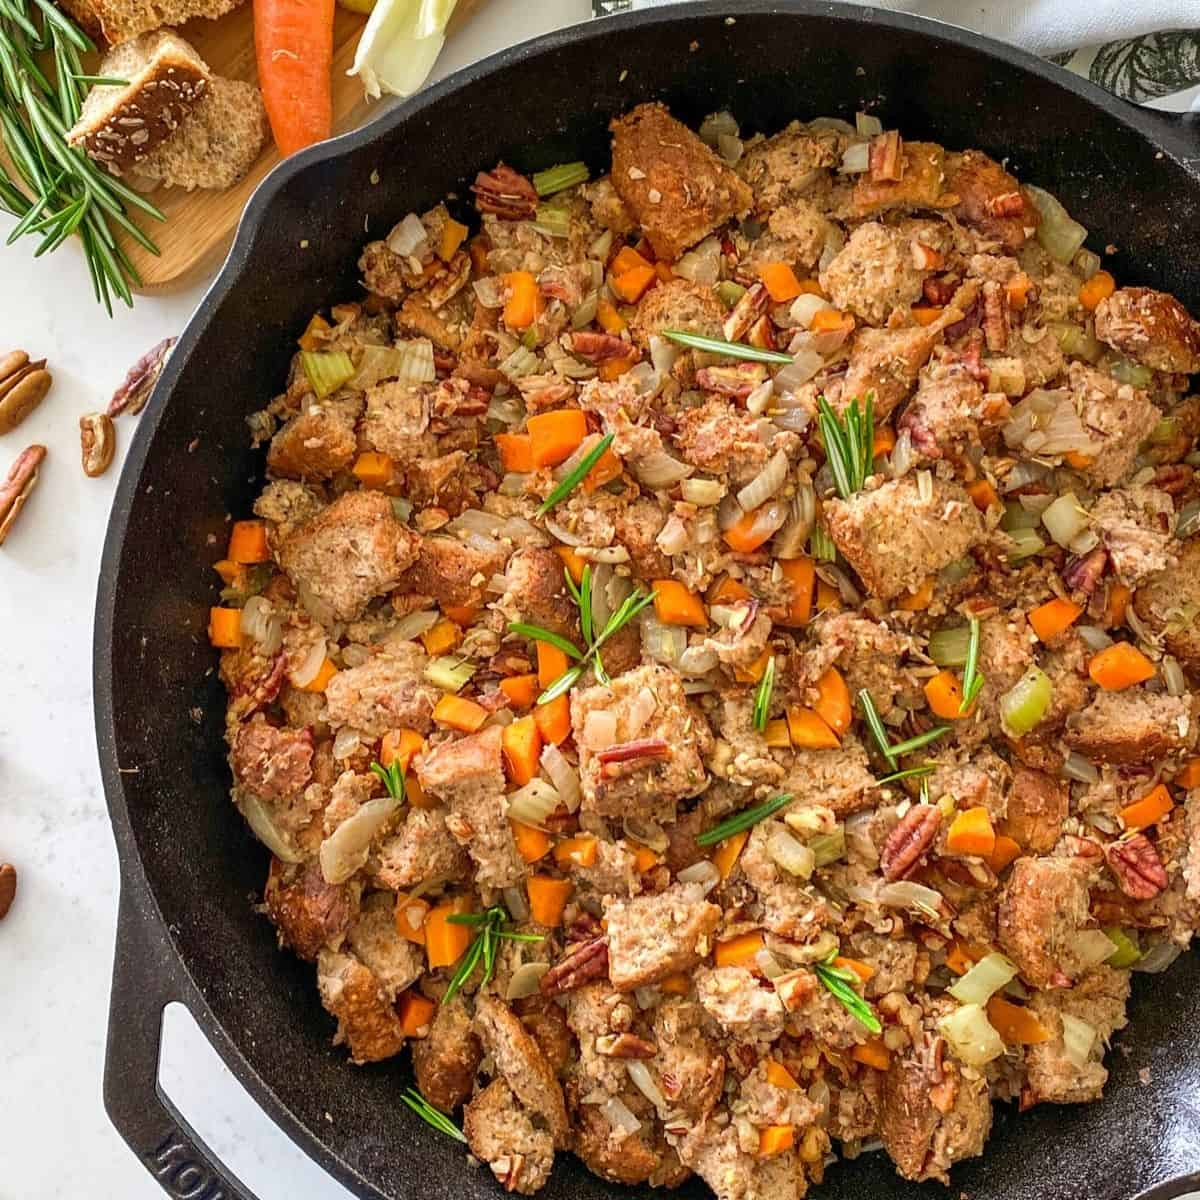 Cast iron pan filled with bread, pecans, carrots, onion and rosemary garnish.